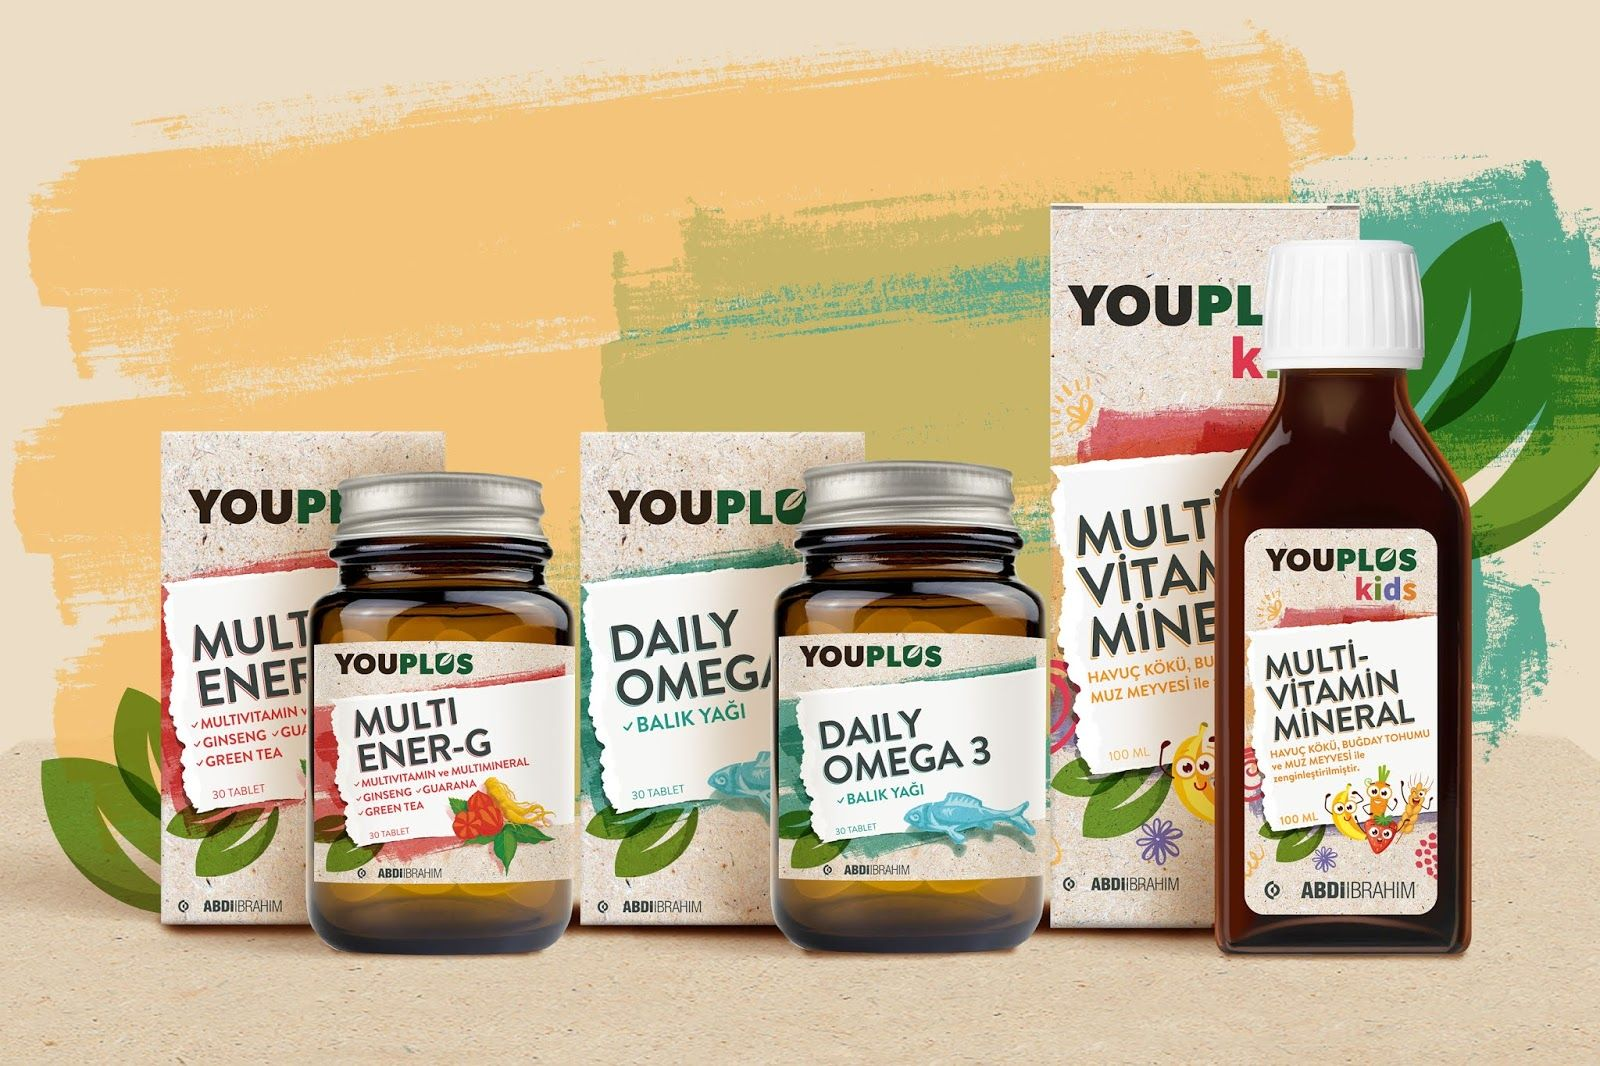 Youplus In 2020 Dietary Supplements Packaging Supplements Packaging Packaging